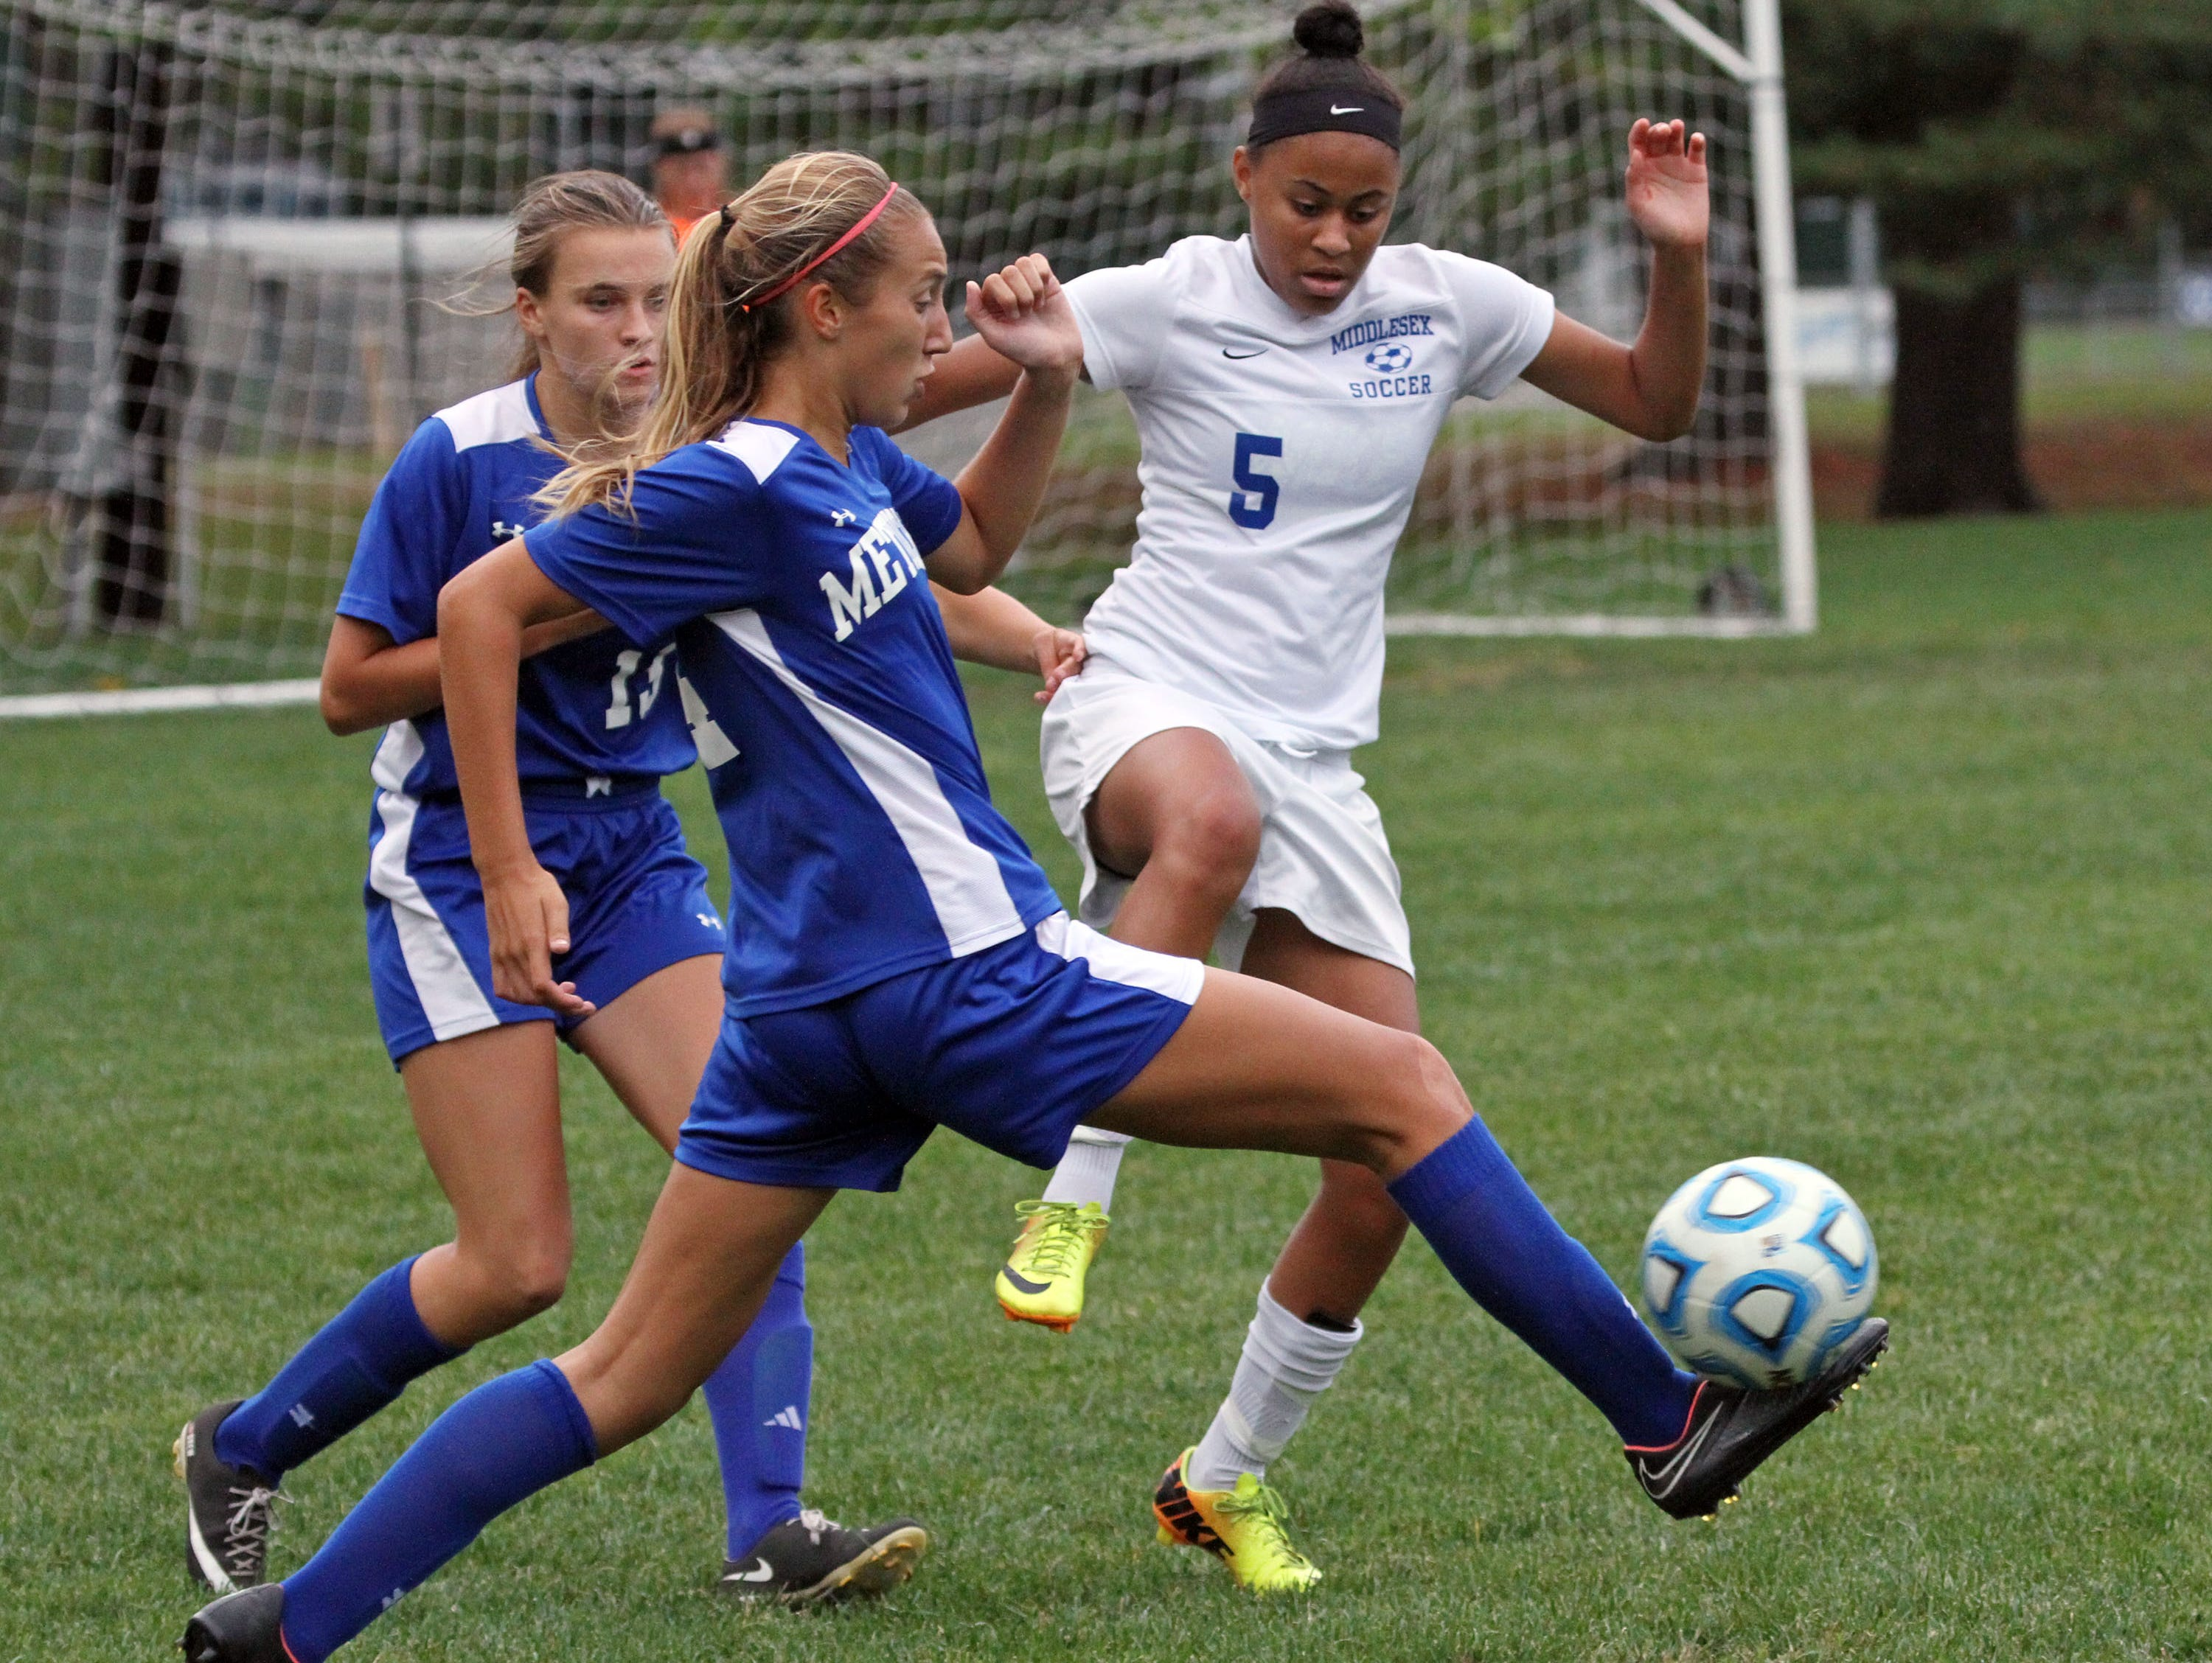 Metuchen's Hope Kenny boots the ball as Zakiya Beckles of Middlesex, right, challenges and teammate Drew Schuchman, left, watches, in girls soccer game at Middlesex.